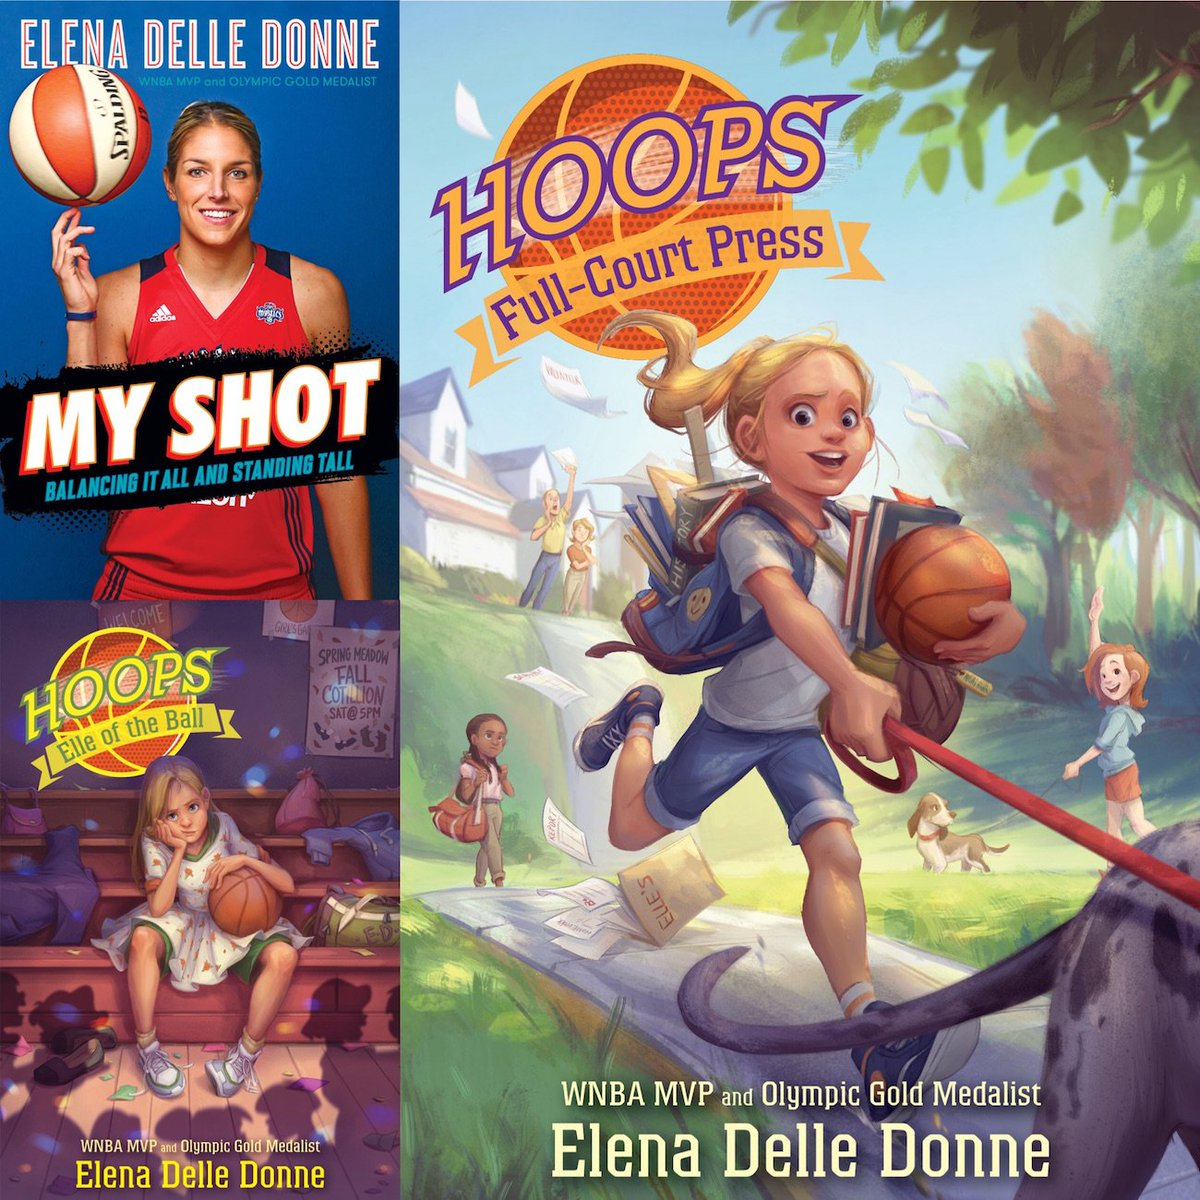 .@De11eDonne publishes her third book for young readers tomorrow with @SimonKIDS! Kid Reporter Ella Nichols asked the @WashMystics star about her career and the advice she has for young players: sikids.com/si-kids/2018/0…